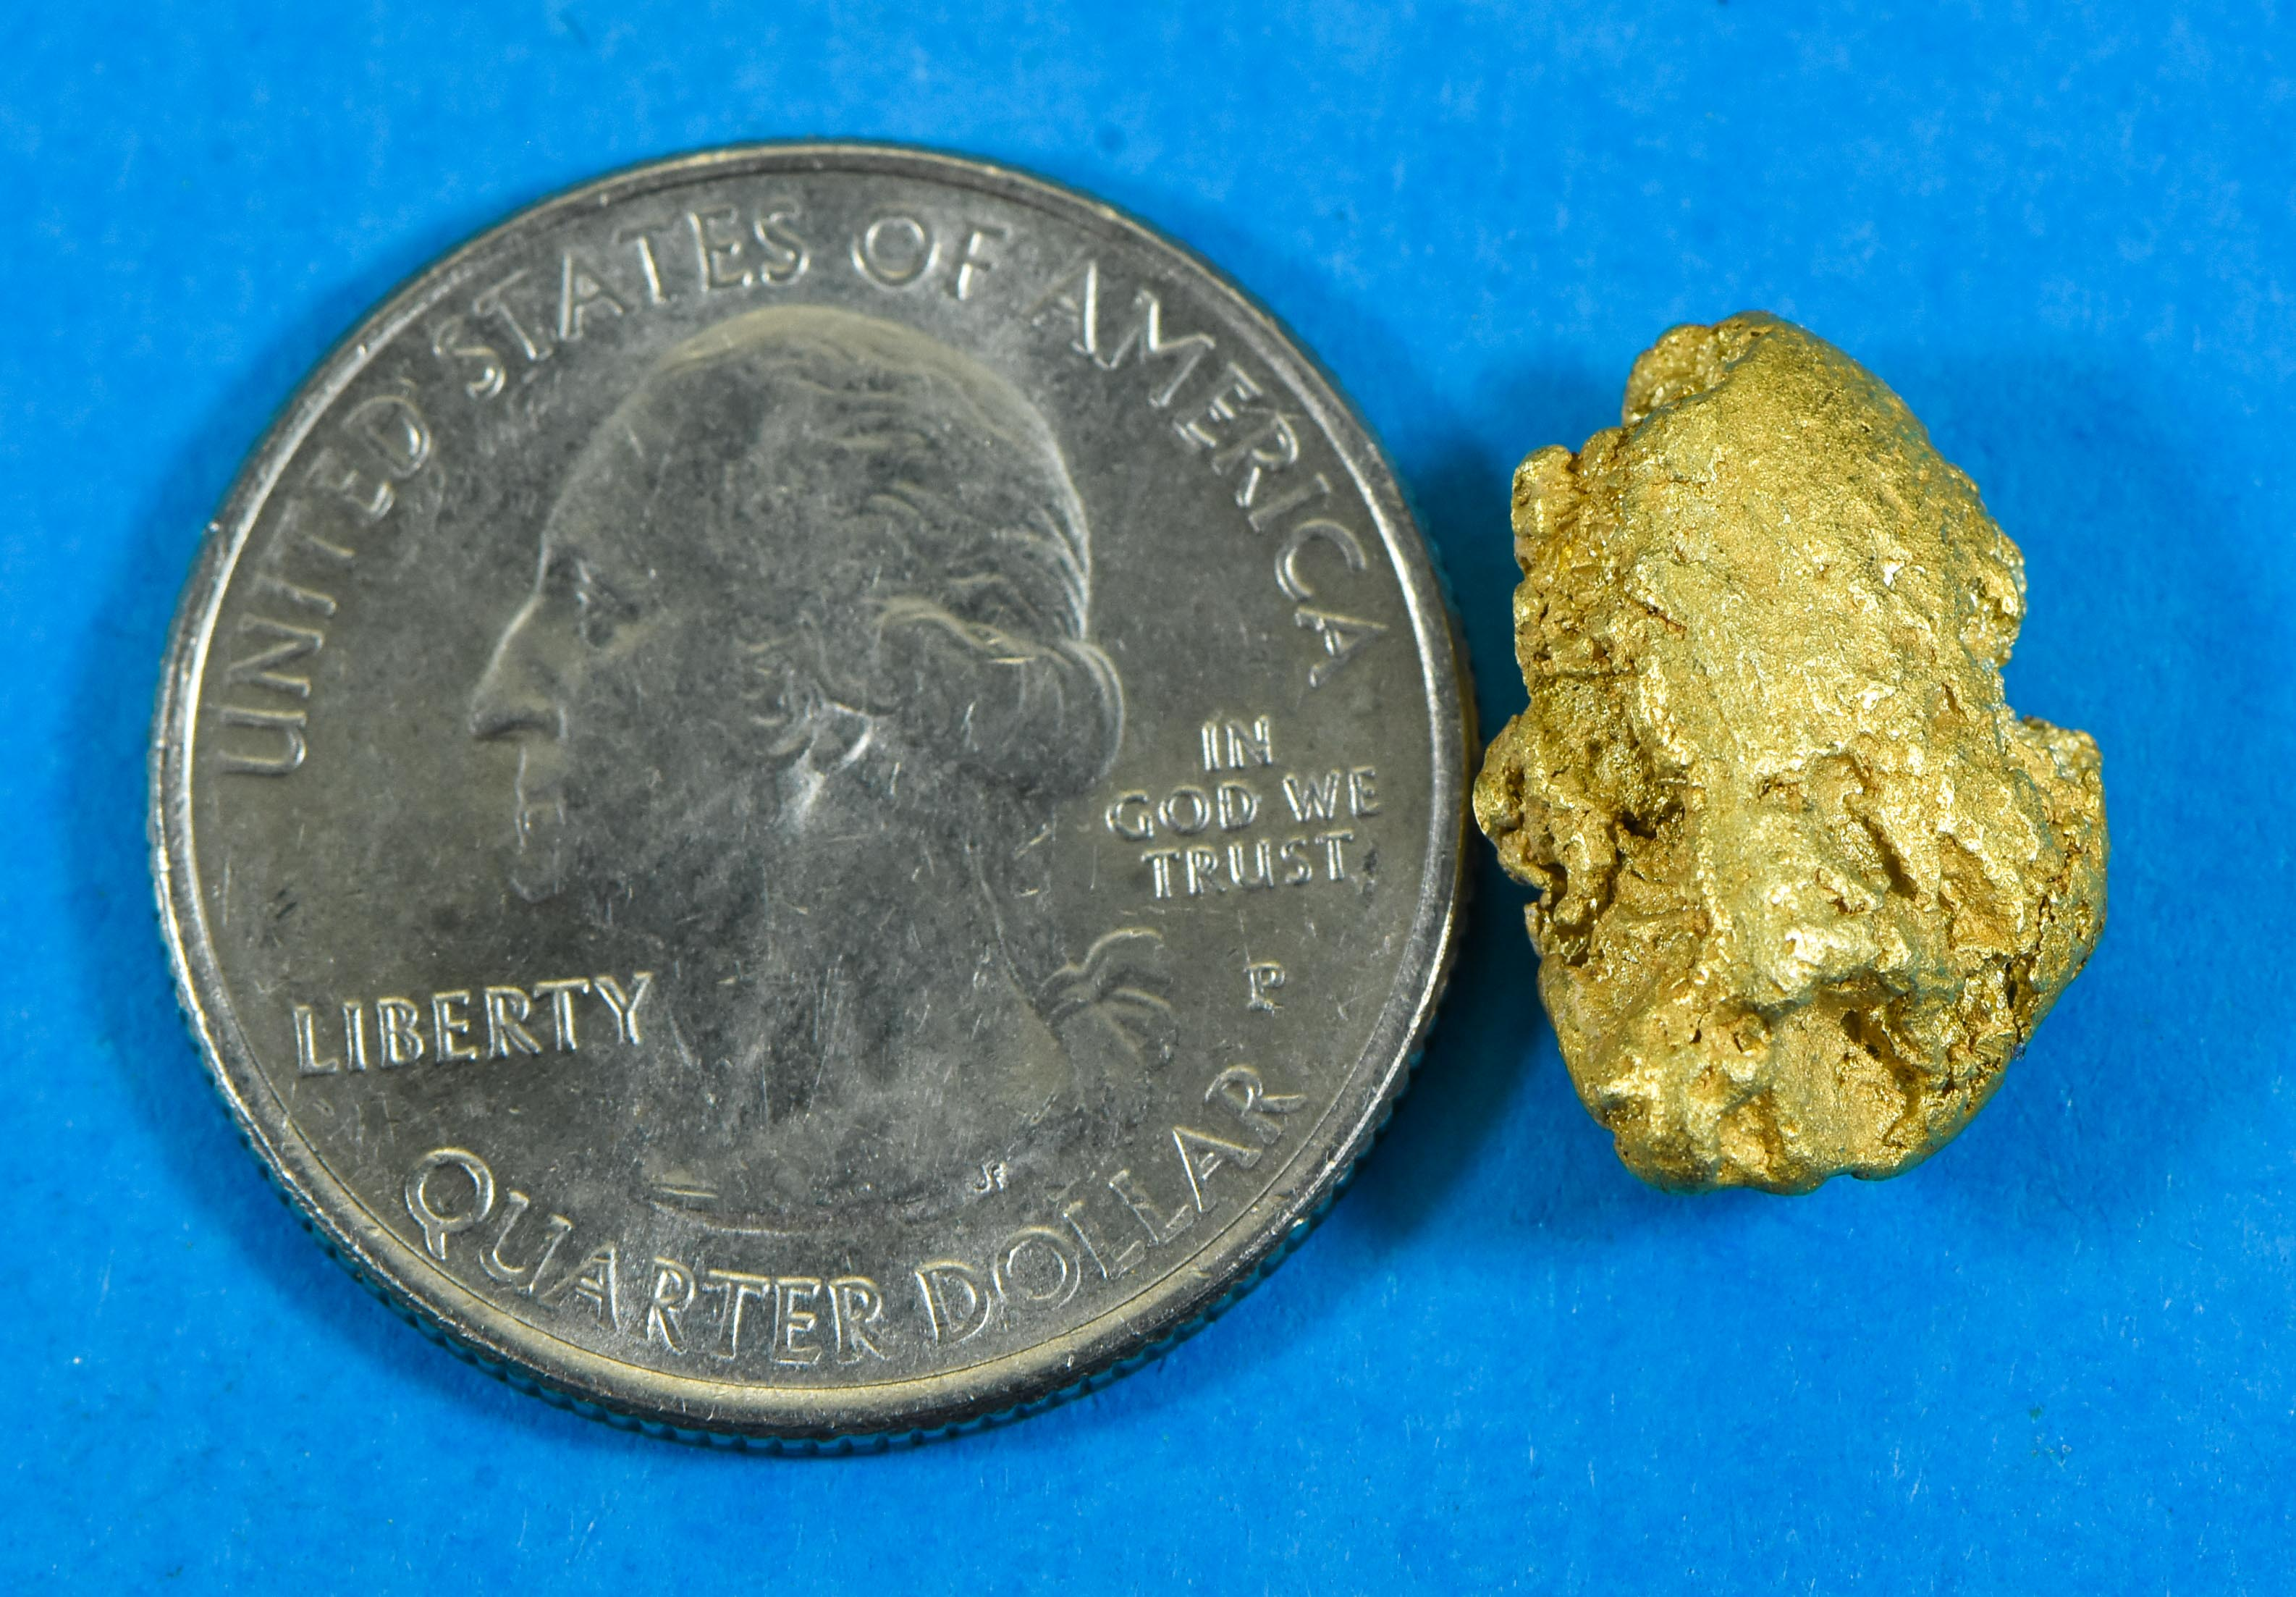 #587 Alaskan-Yukon BC Natural Gold Nugget Pendant 9.85 Grams Authentic